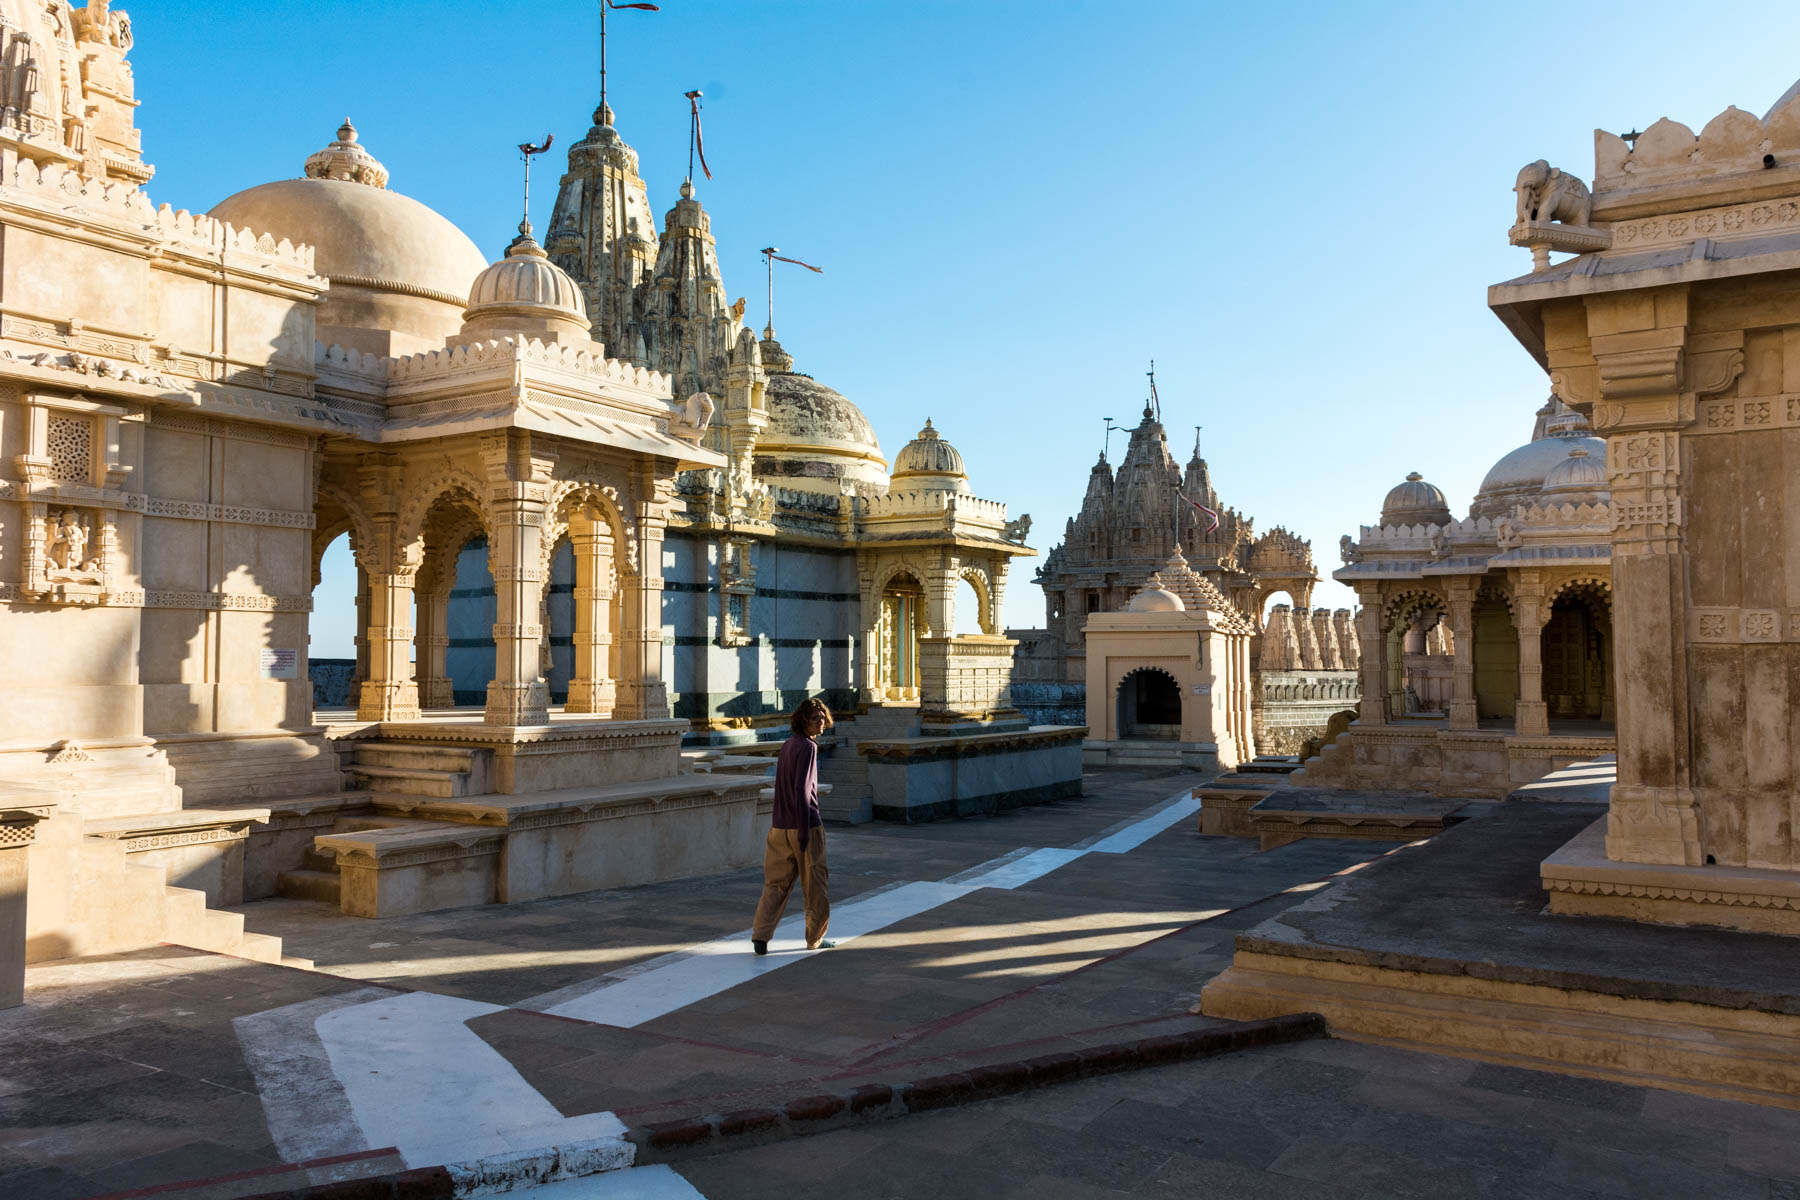 Sunrise at the temples during a Jain pilgrimage in Palitana, India - Lost With Purpose